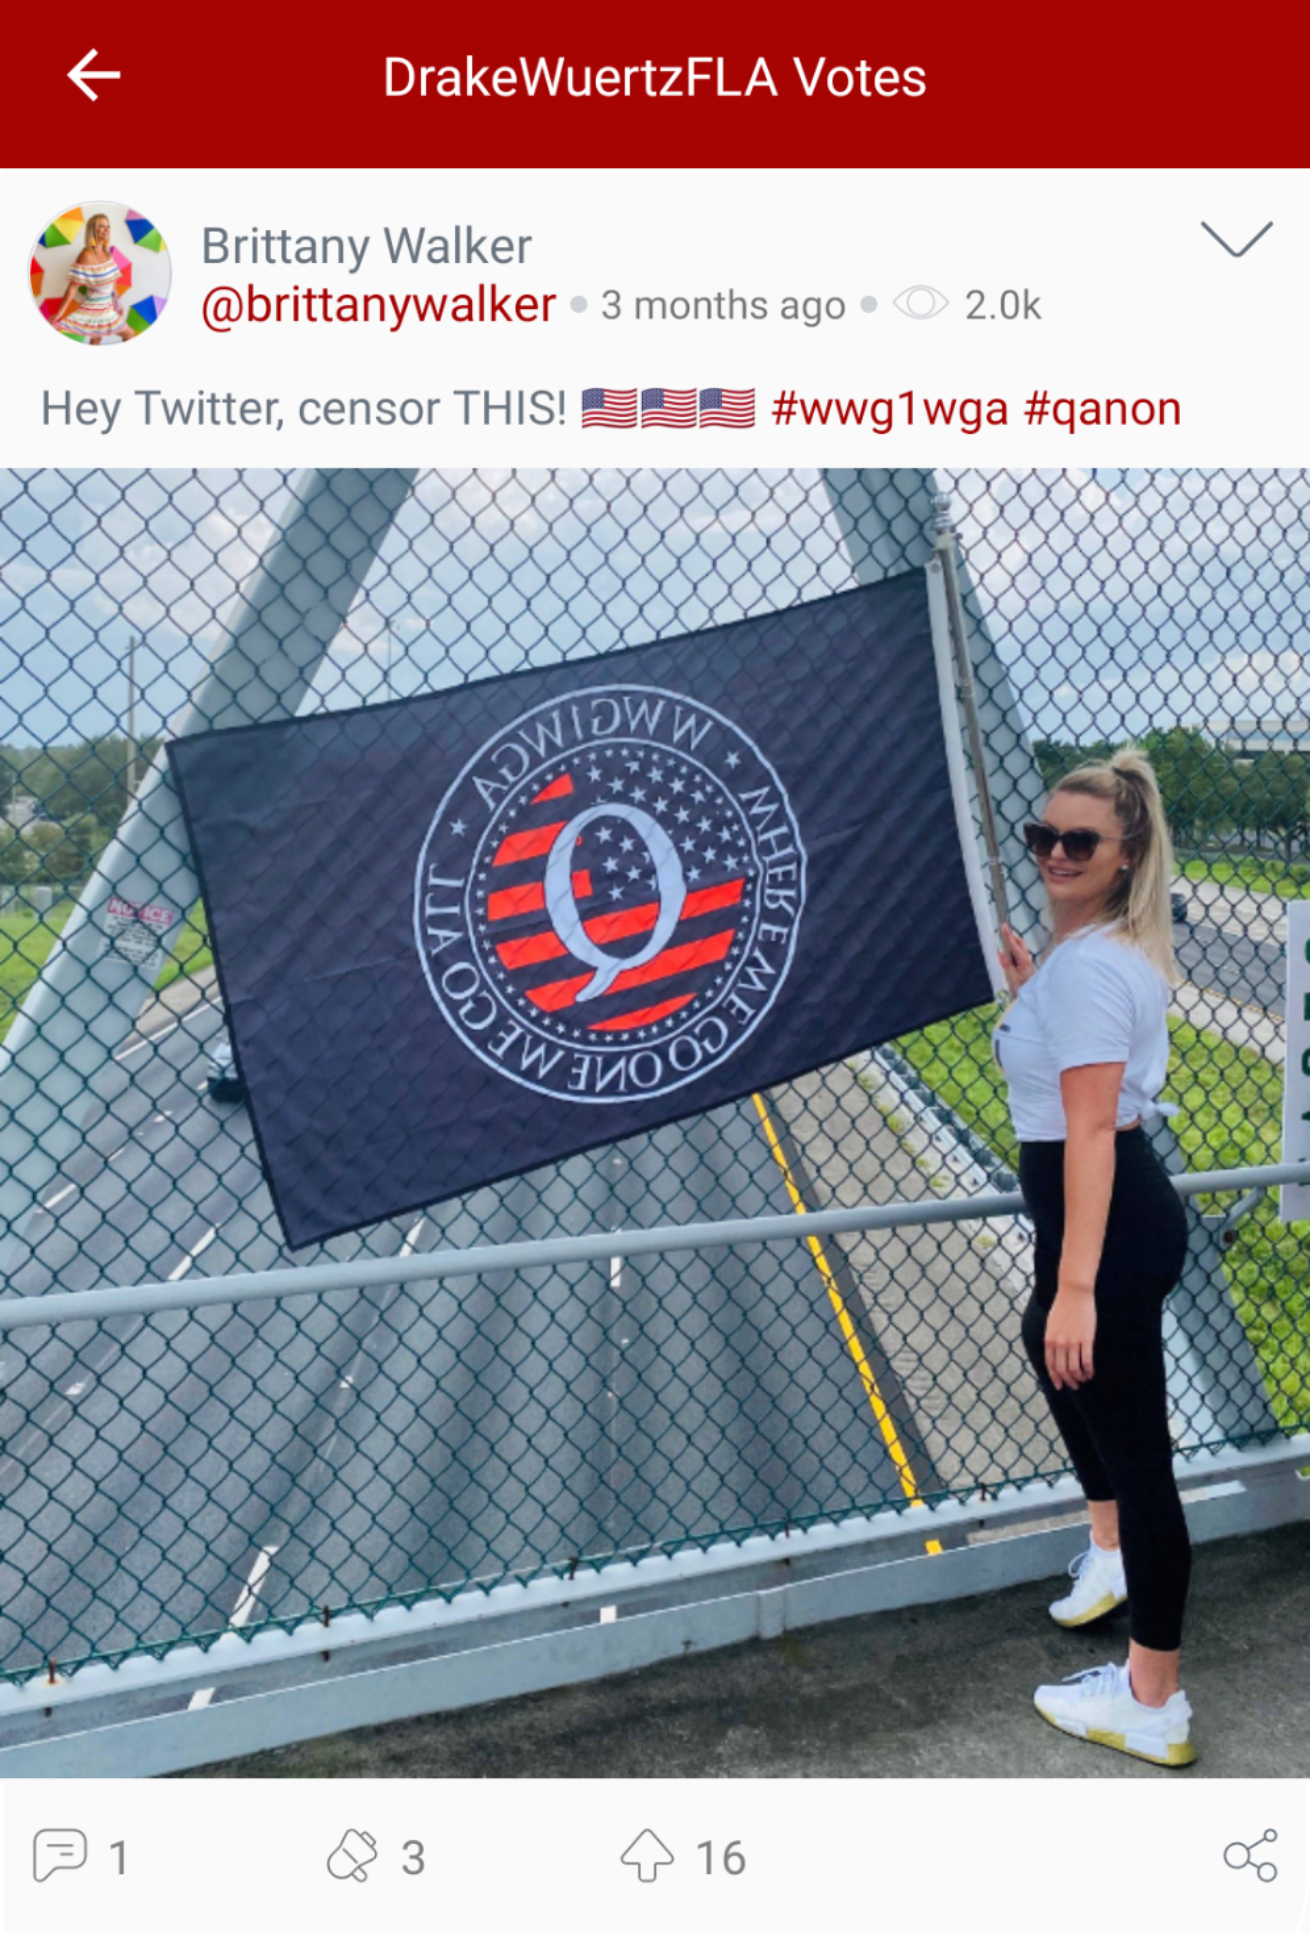 "@DrakeWuertzFLA ""votes"" a Parler post from Brittany Walker displaying a (backwards) QAnon flag, which also includes the hashtags ""#qanon"" and ""#wweg1wga,"" the latter standing for QAnon catchphrase ""Where We Go One, We Go All."" (Image: Parler screenshot.)"